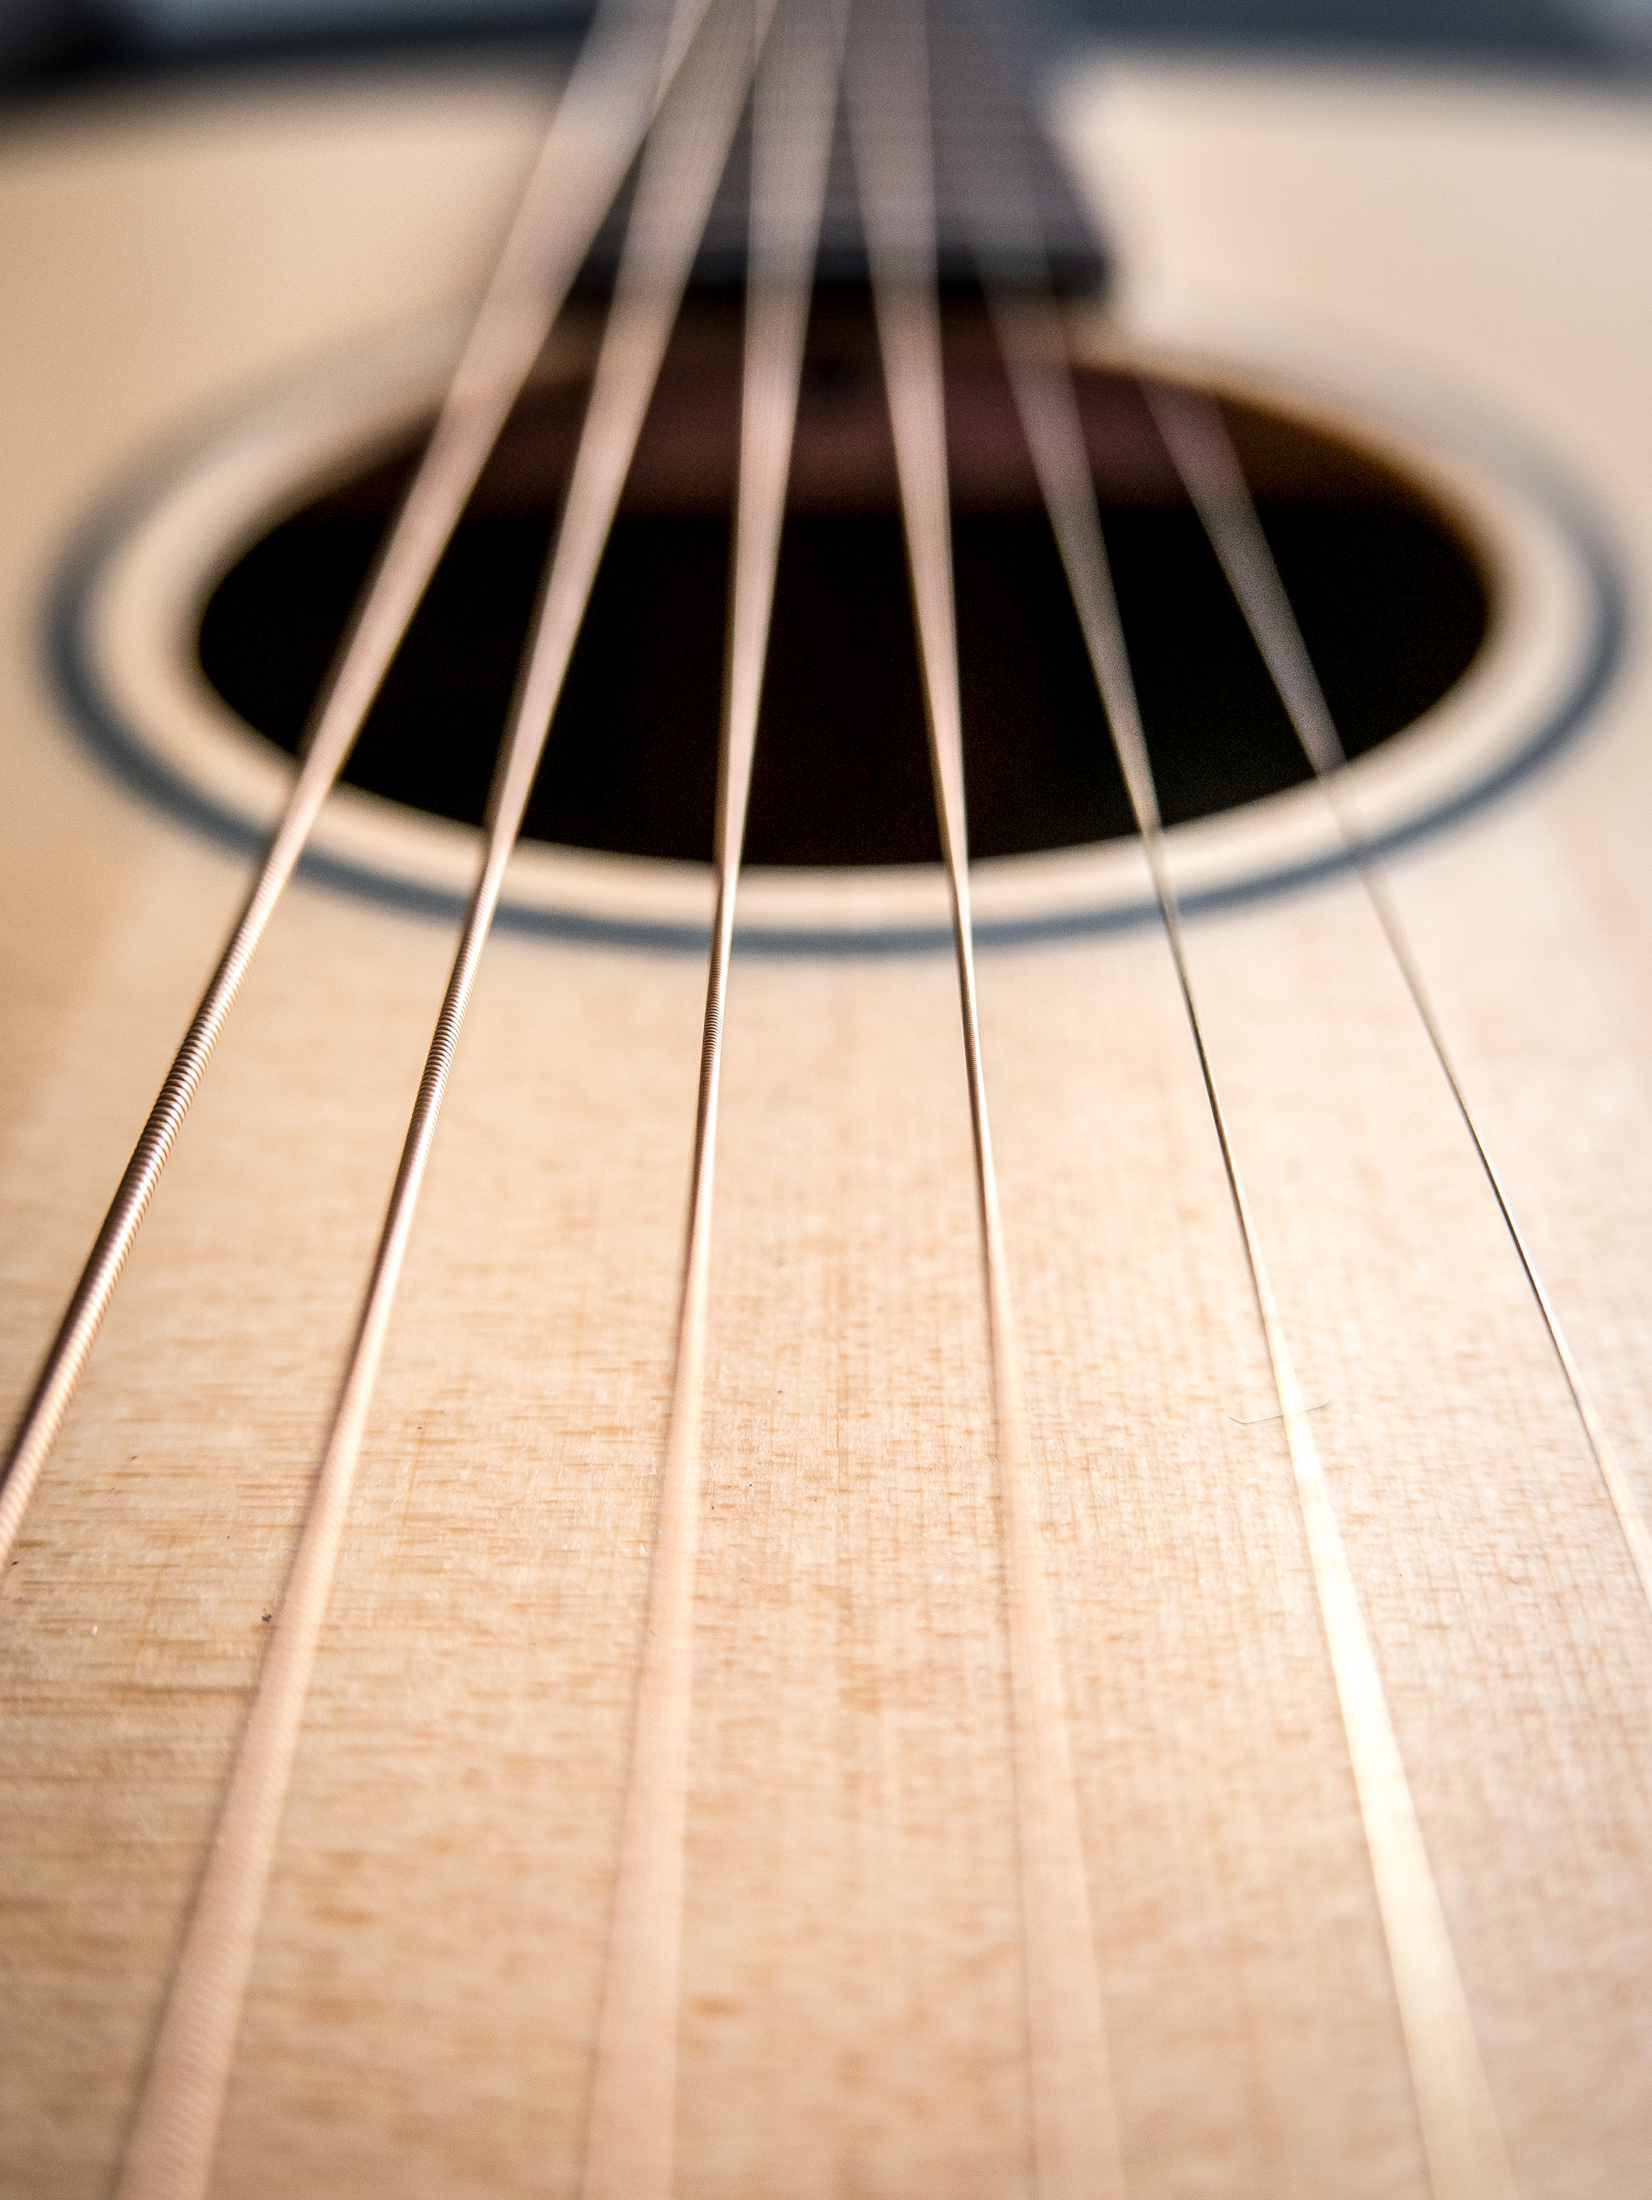 Small steps to mastery - guitar strings